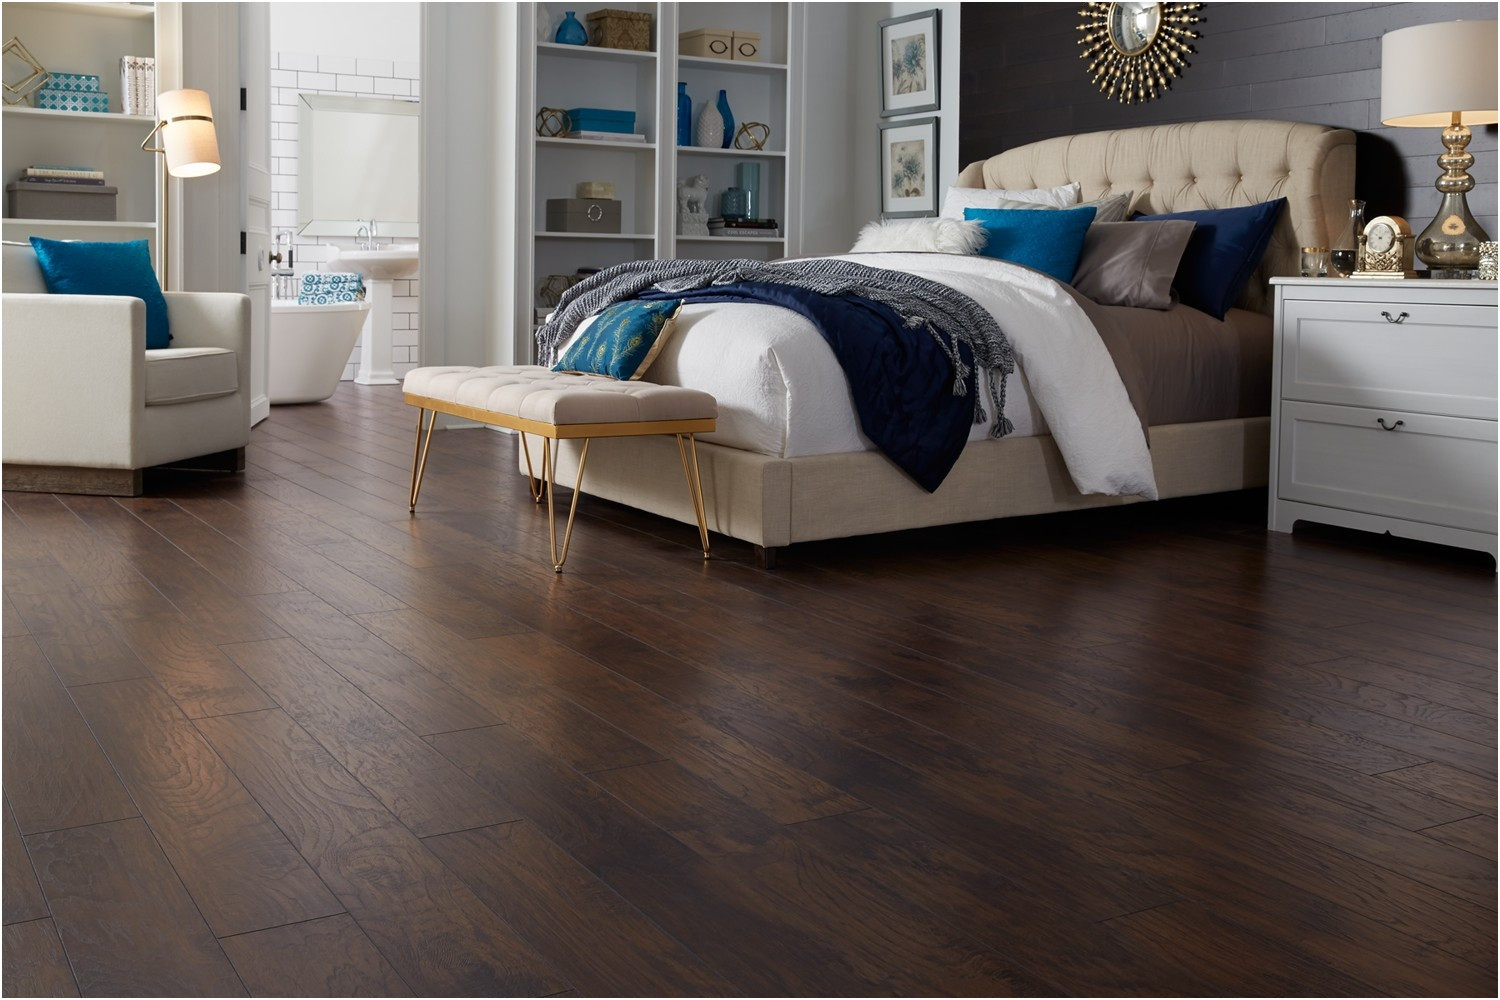 gluing hardwood floors to concrete of how to remove vinyl flooring from concrete fresh how to install glue regarding how to remove vinyl flooring from concrete lovely 24 new stock hardwood flooring concrete of how